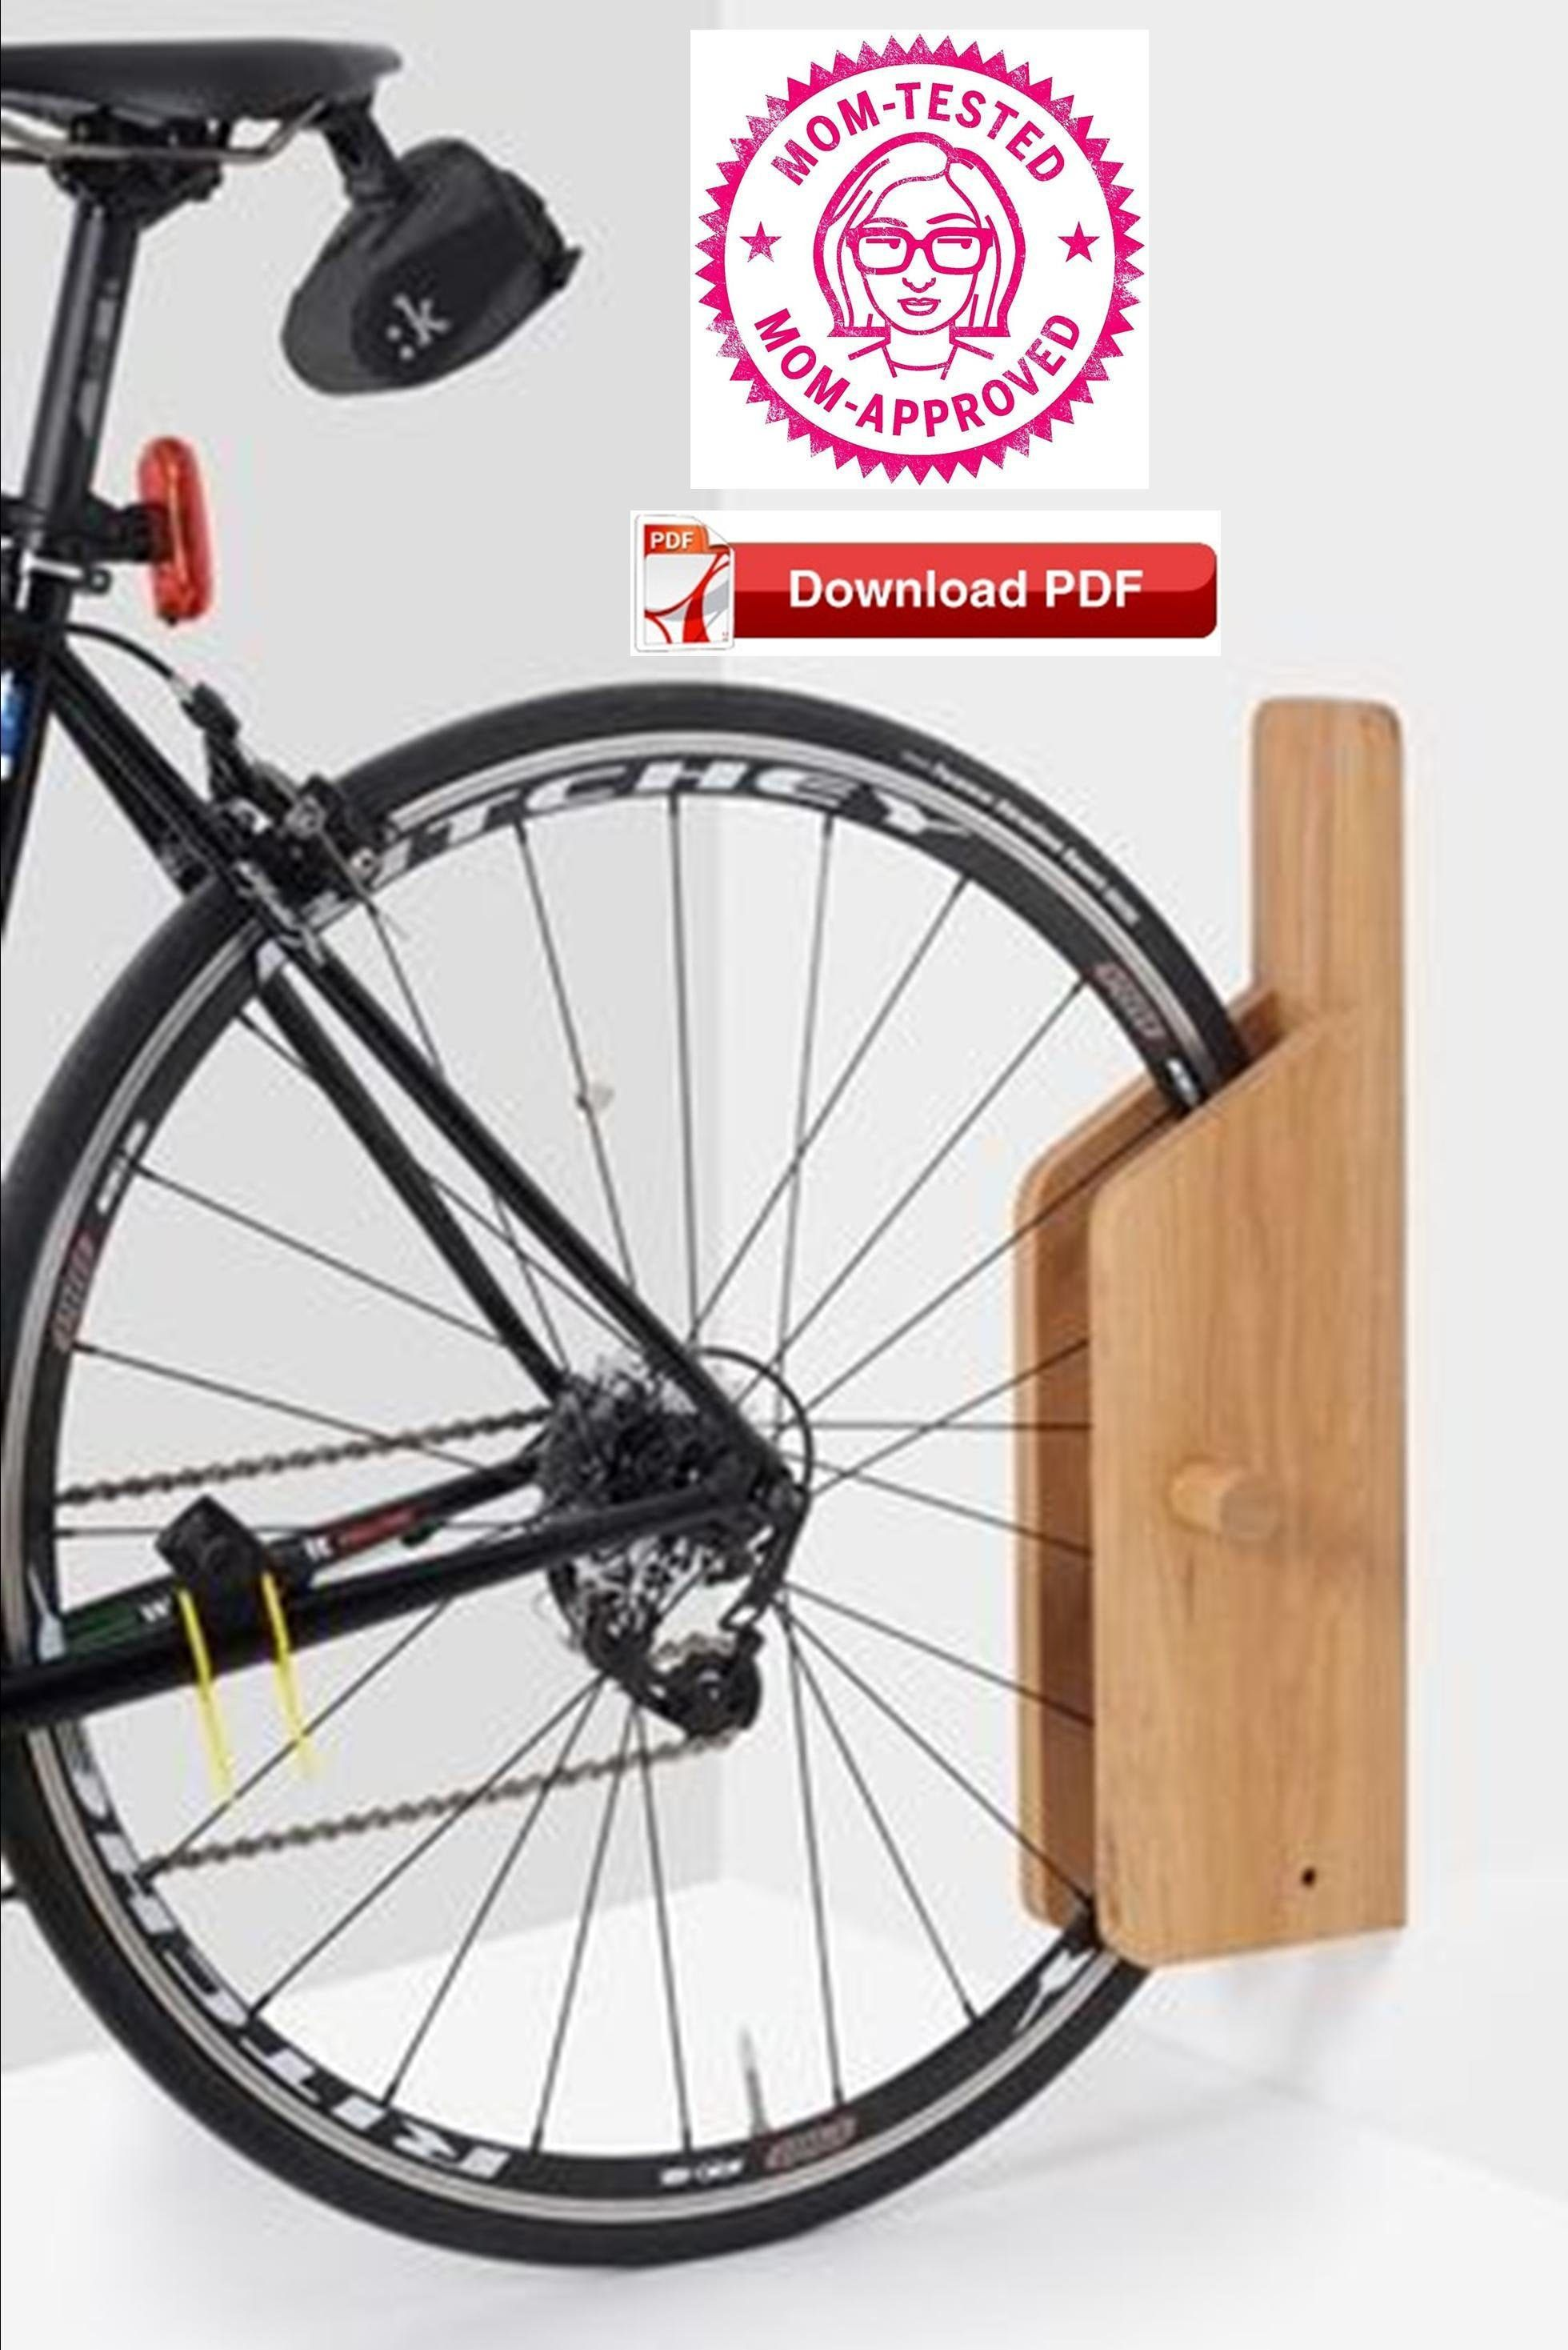 Wall Mount Bike Rack Plan Apartment Bike Stand Plan Compact Bike